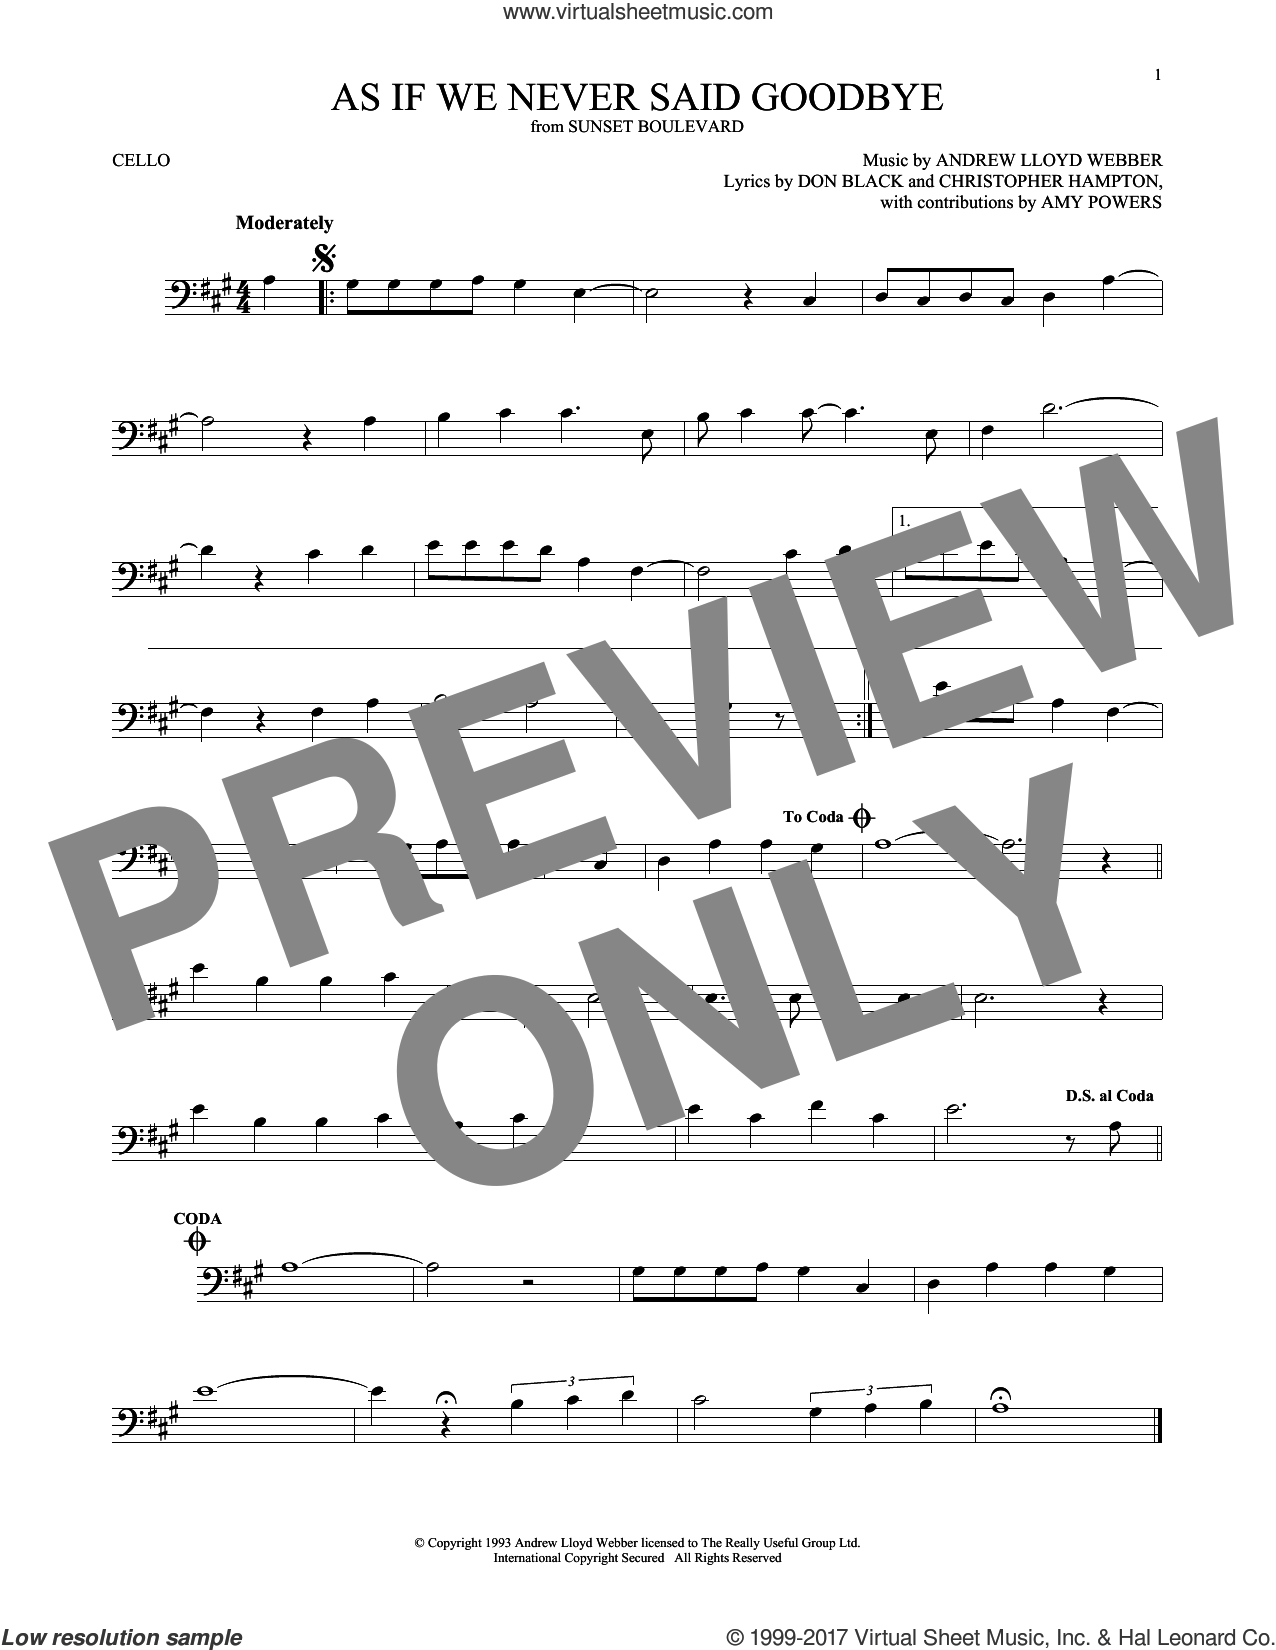 As If We Never Said Goodbye sheet music for cello solo by Andrew Lloyd Webber, Christopher Hampton and Don Black, intermediate skill level